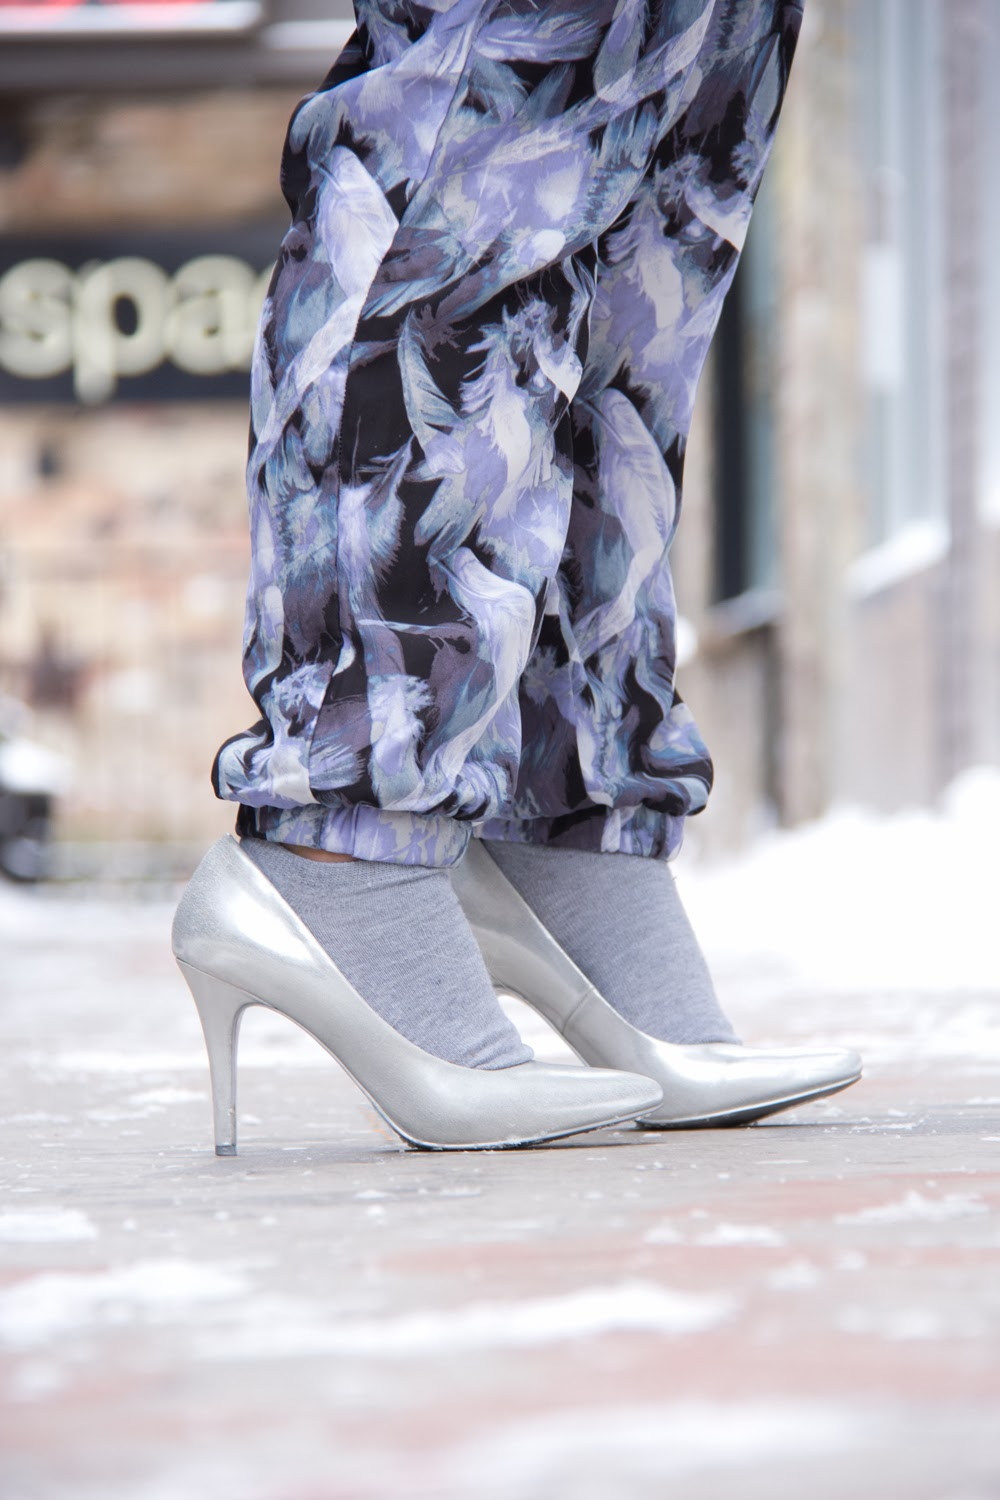 Print-Trousers, Socks-with-Pumps, Fashion-Blogger, Street-Style